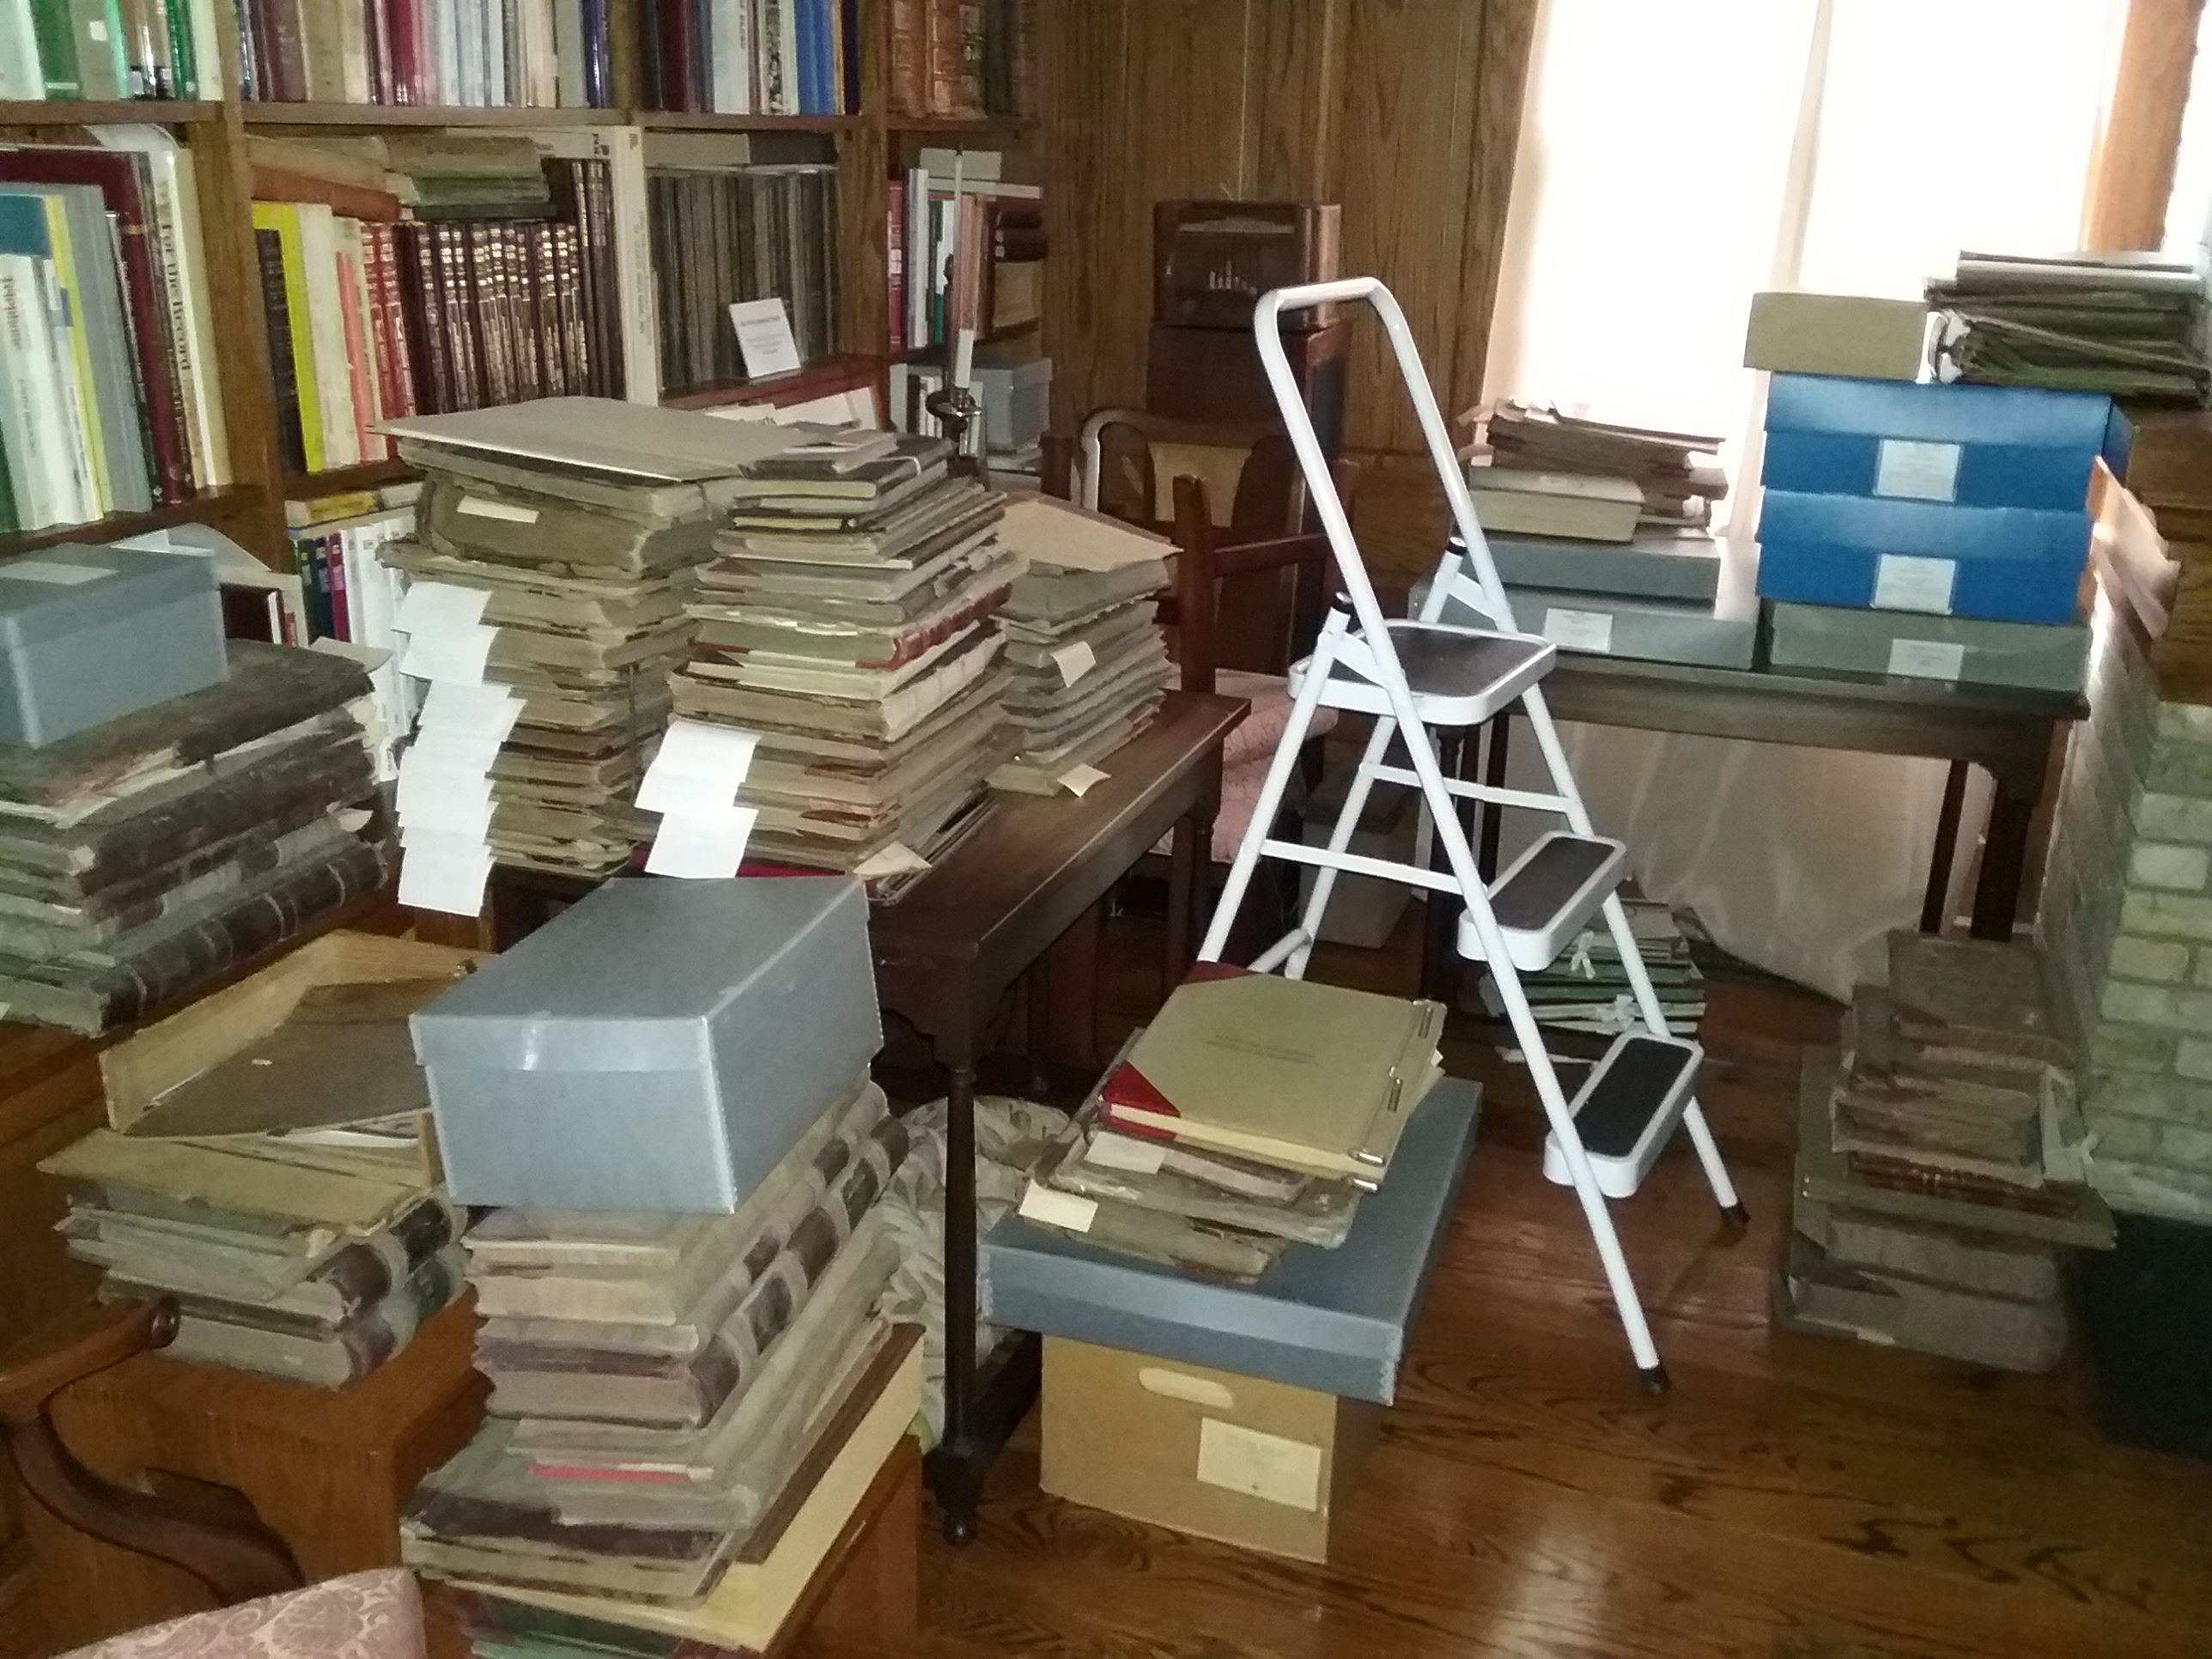 Musser Library at The Charles A. Weyerhaeuser Memorial Museum, Little Falls, MN, filled with archival materials, July 2019.